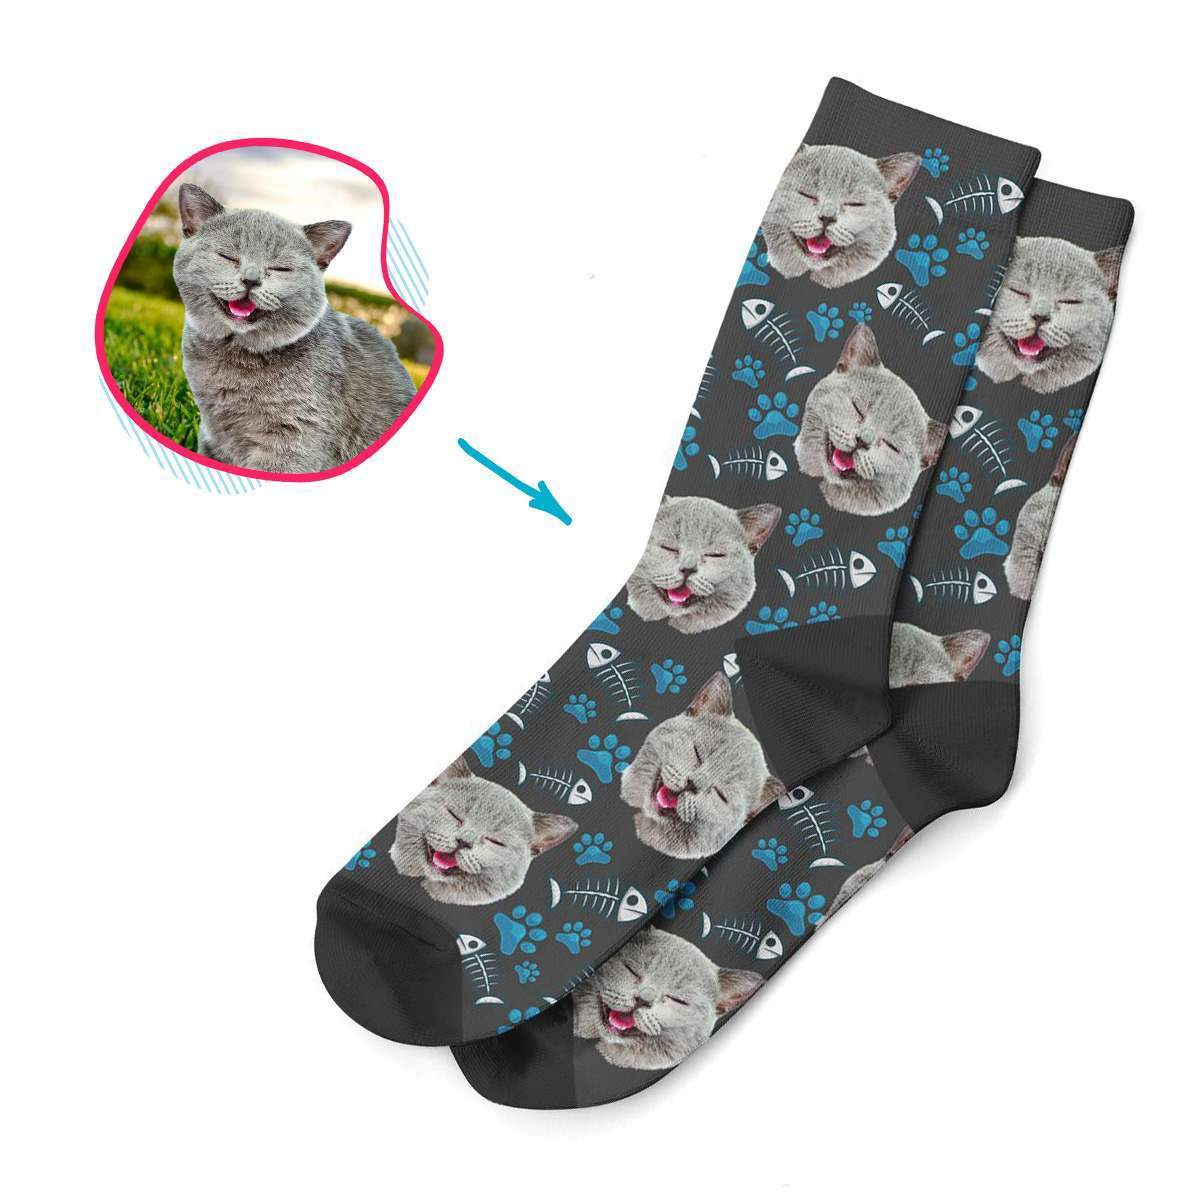 dark Cat socks personalized with photo of face printed on them